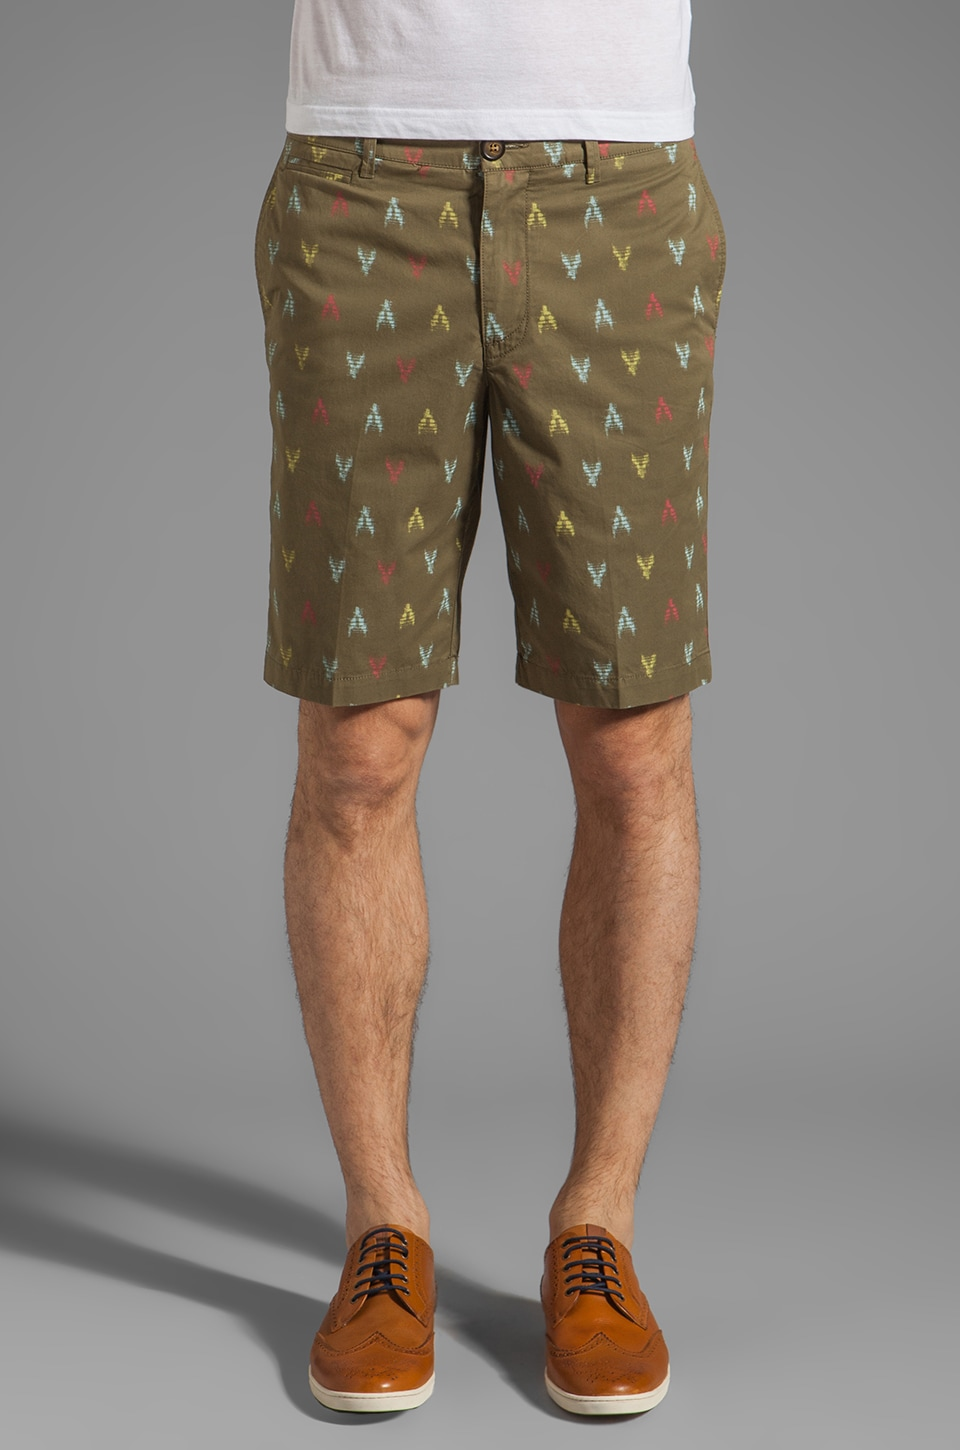 Penguin Ikat Print Short Margate Fit Short in Burnt Olive